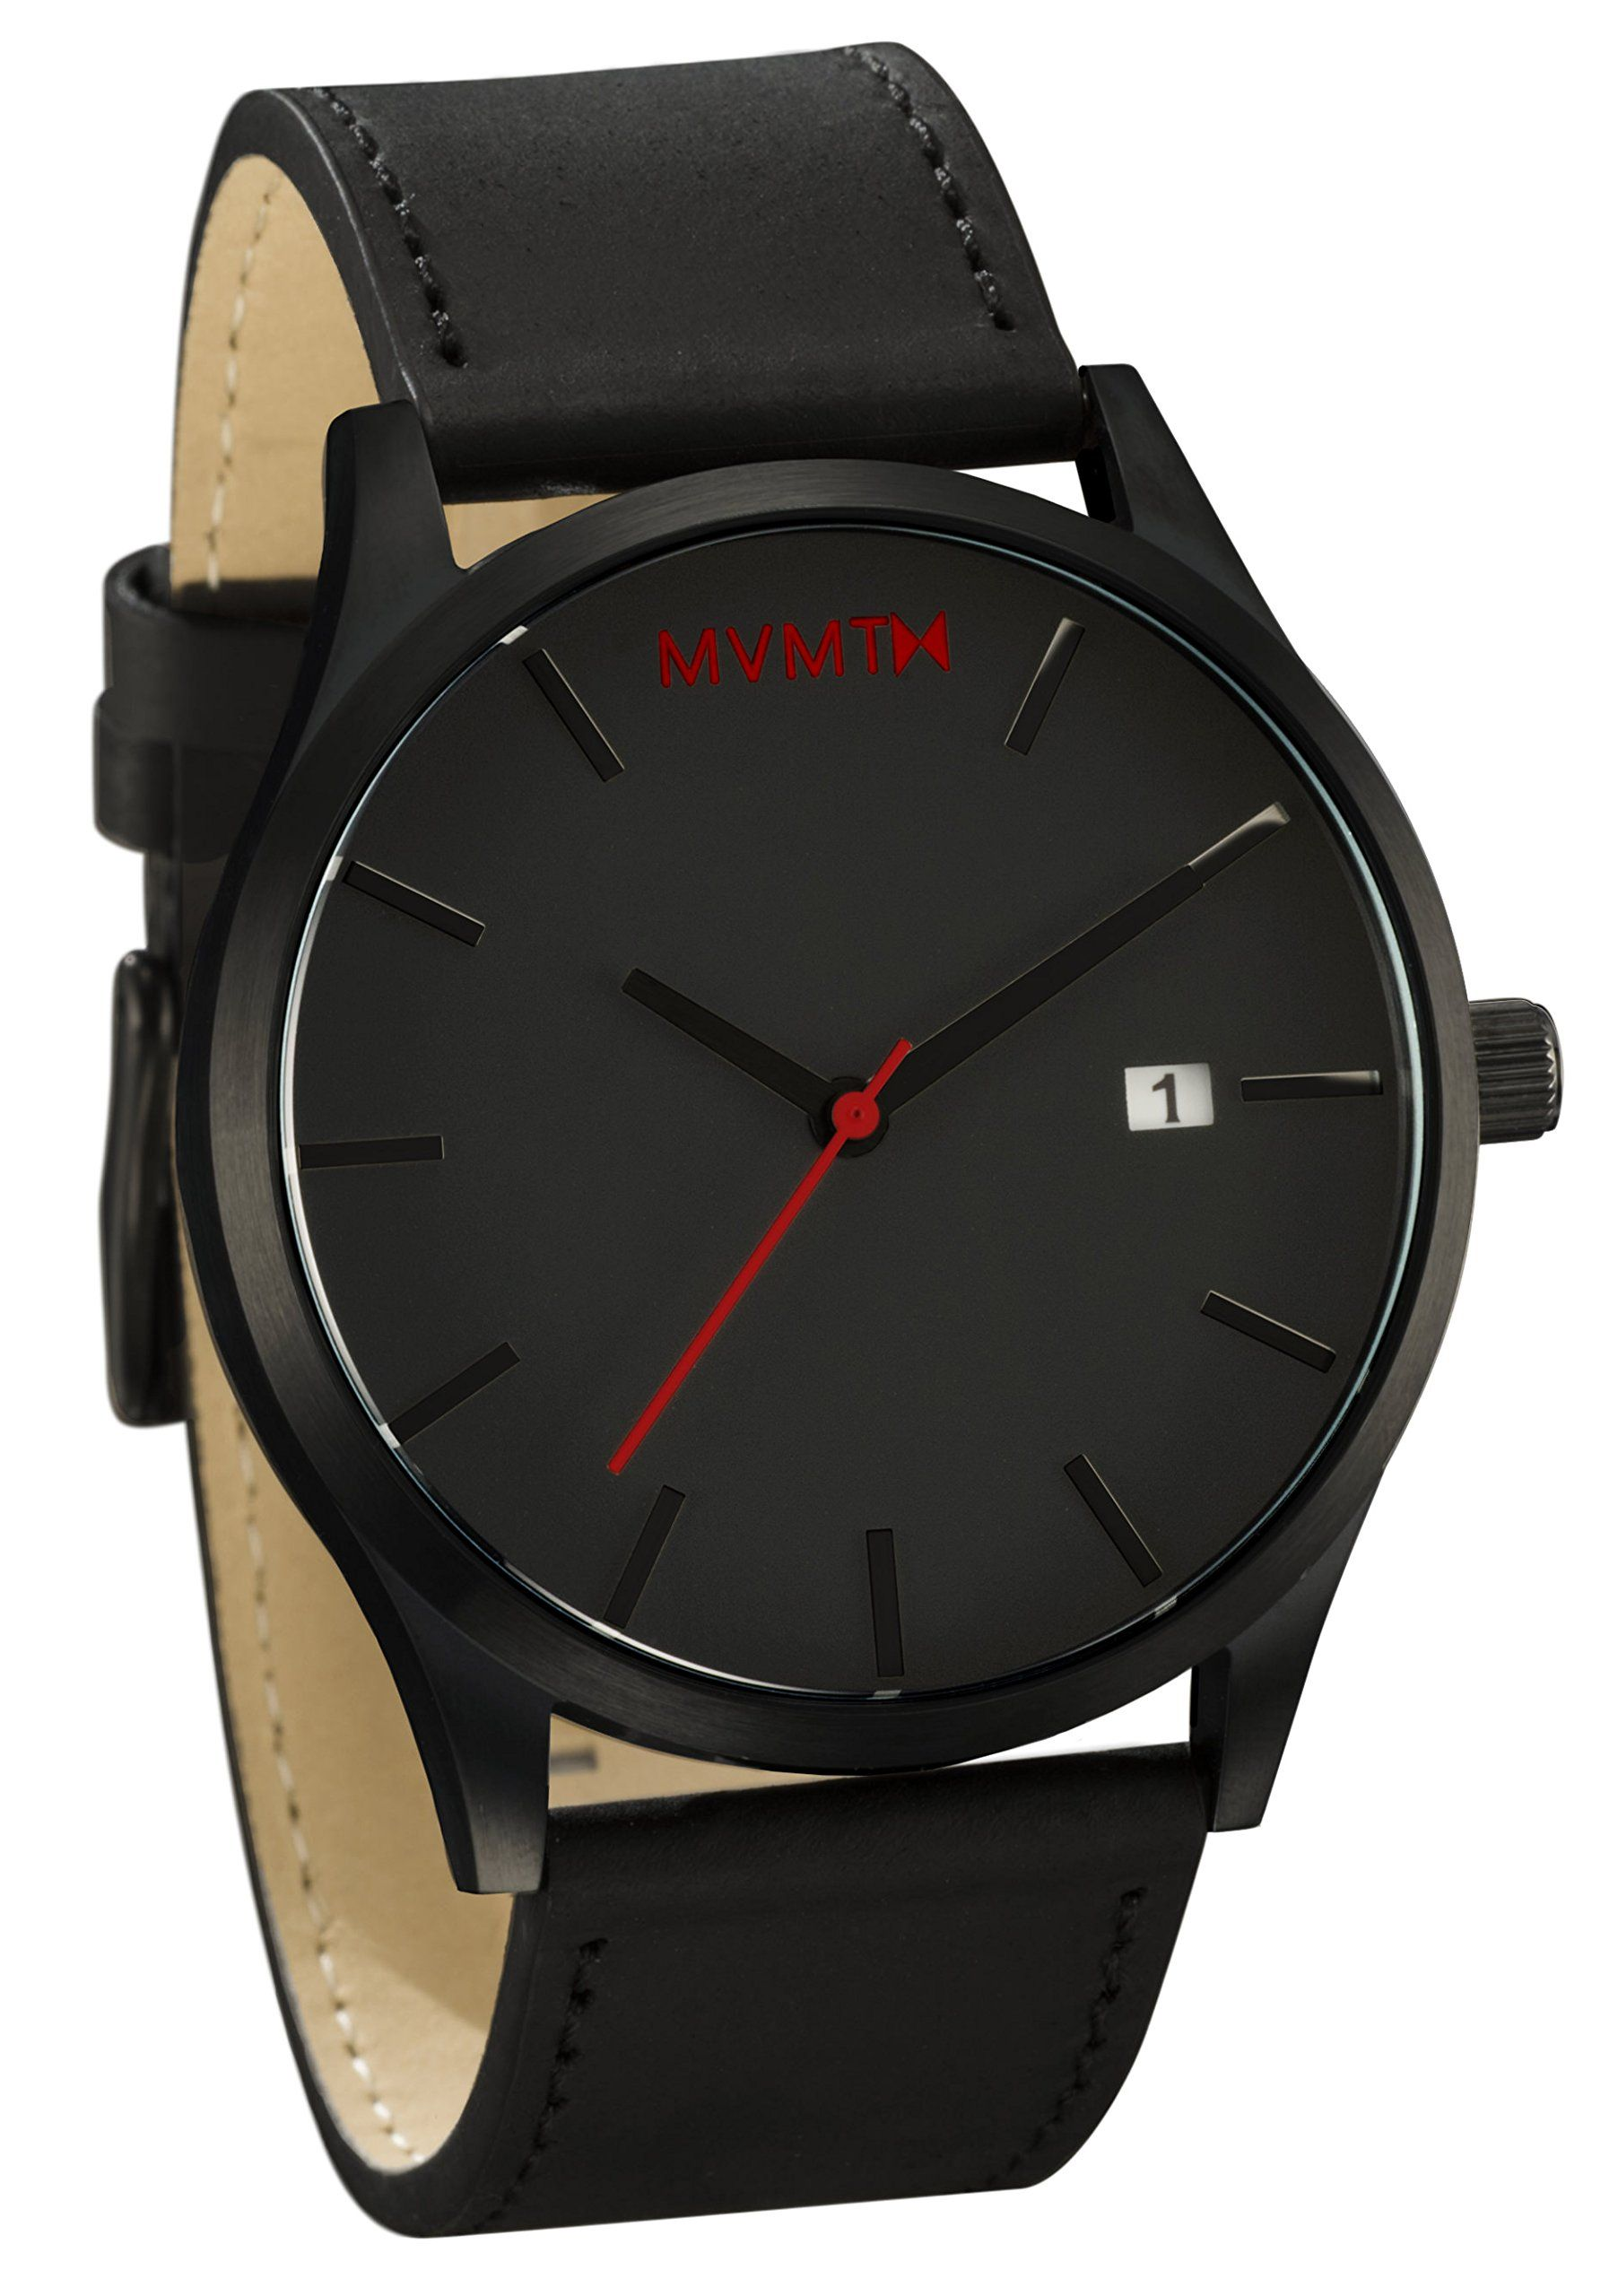 Mvmt Uhren Mvmt Watches Black Face With Black Leather Strap Men S Watch